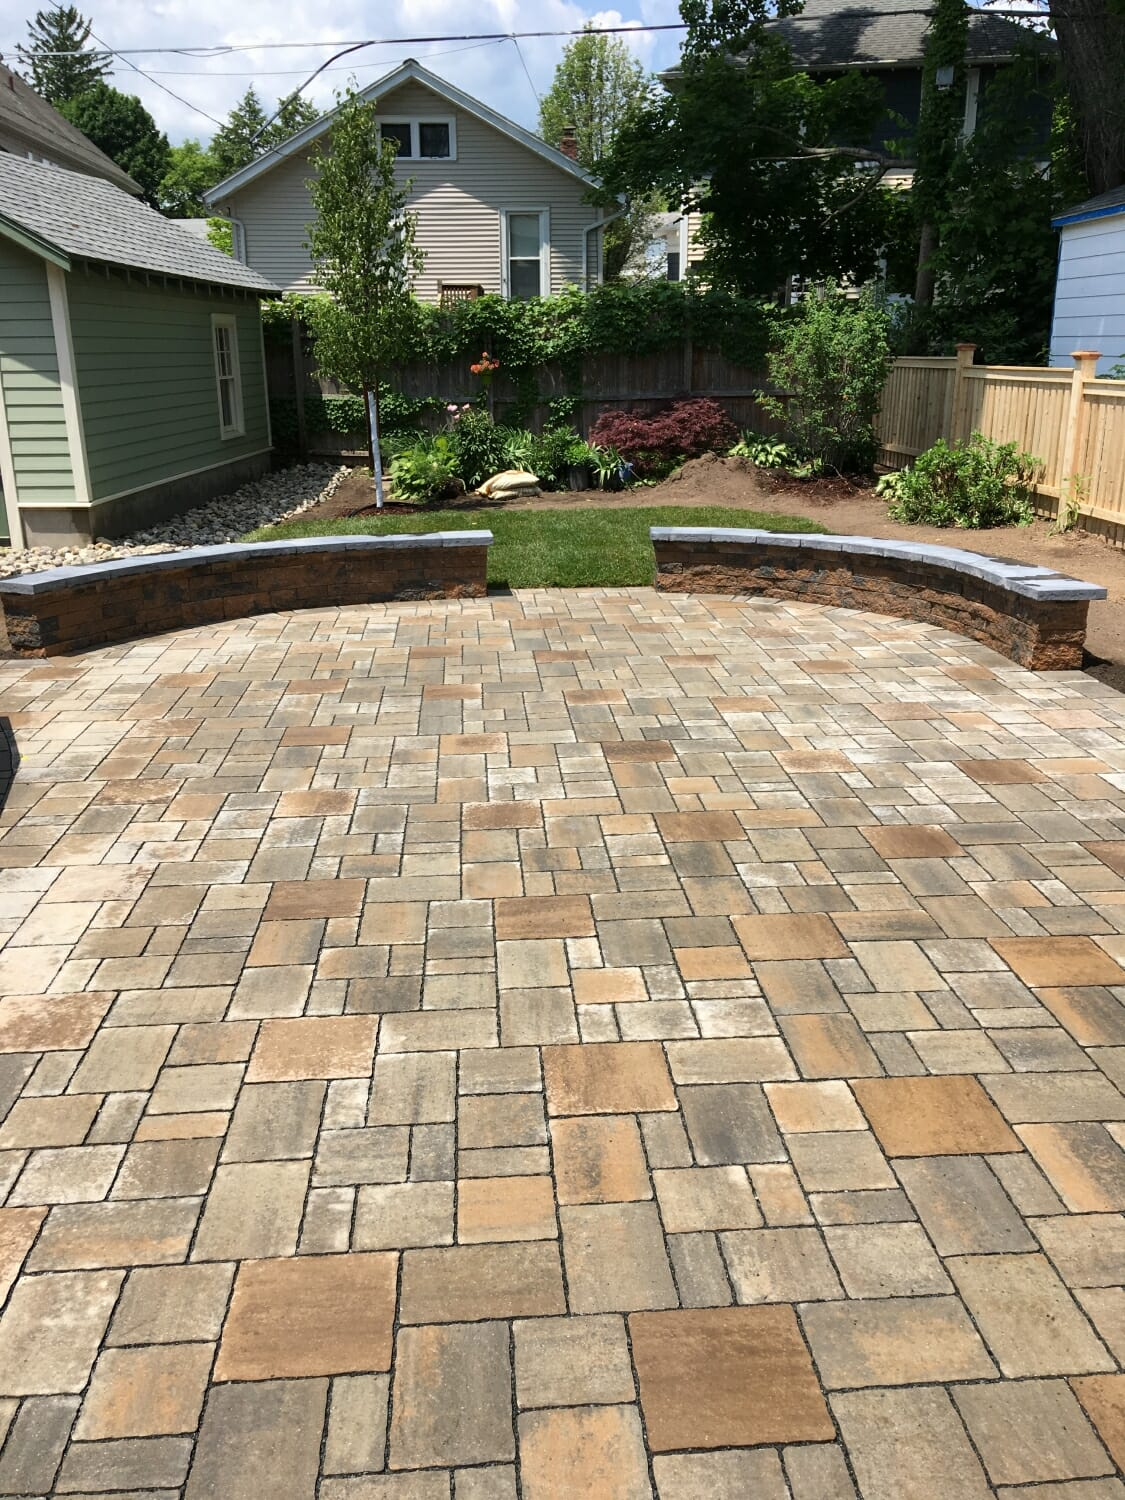 Permeable patio design in Albany, NY